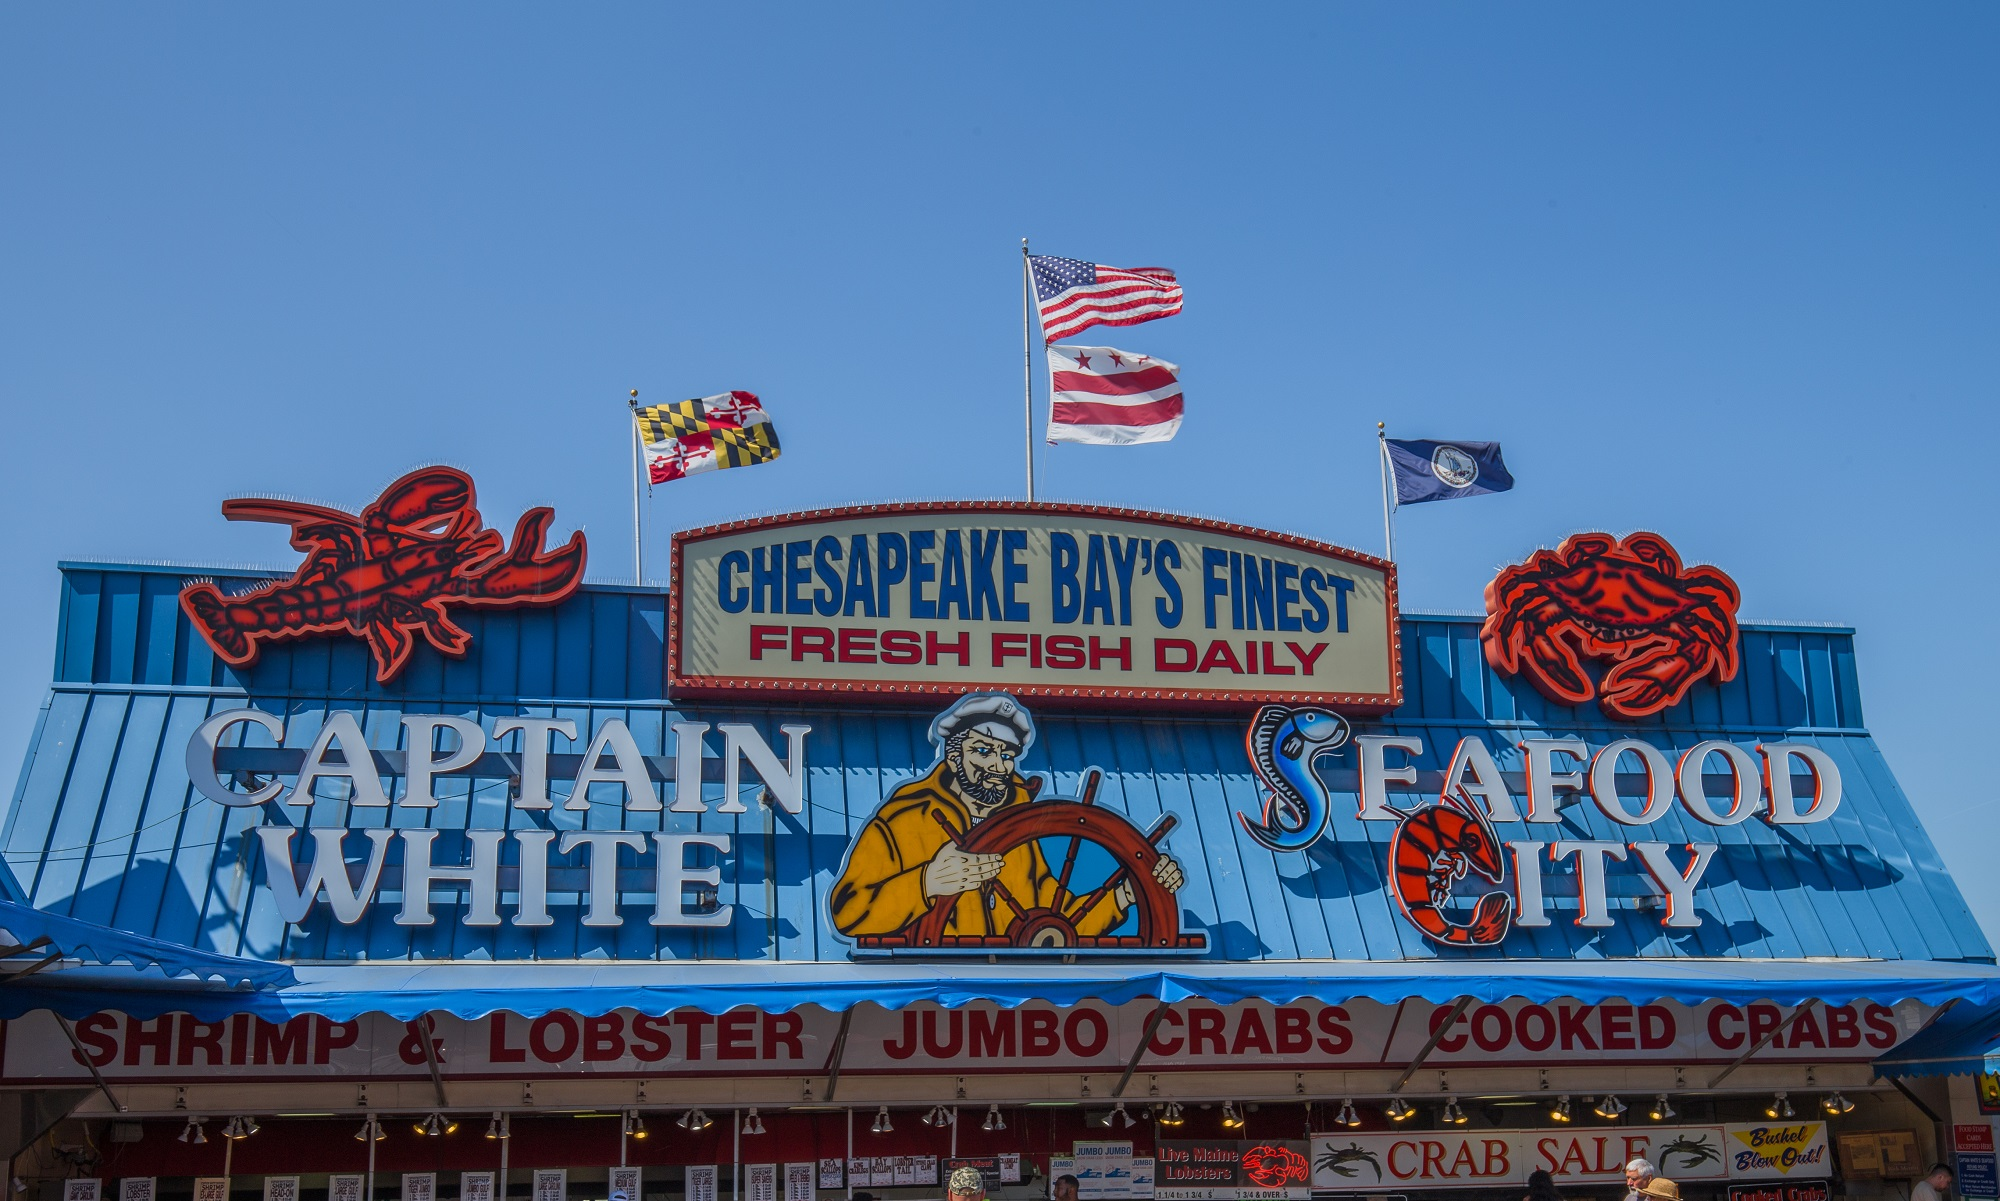 Captain White Seafood